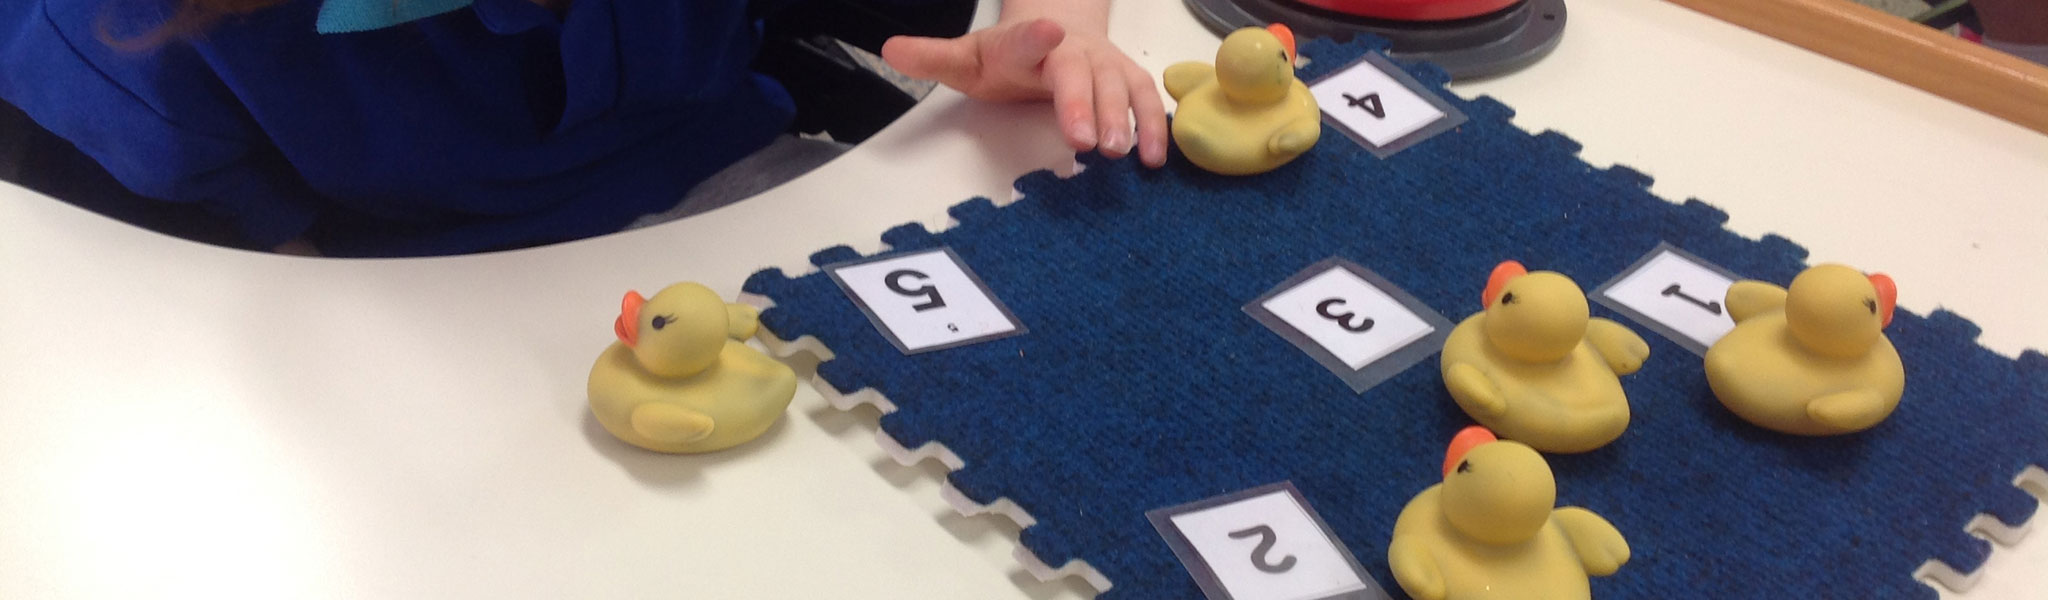 Rubber ducks and numbers